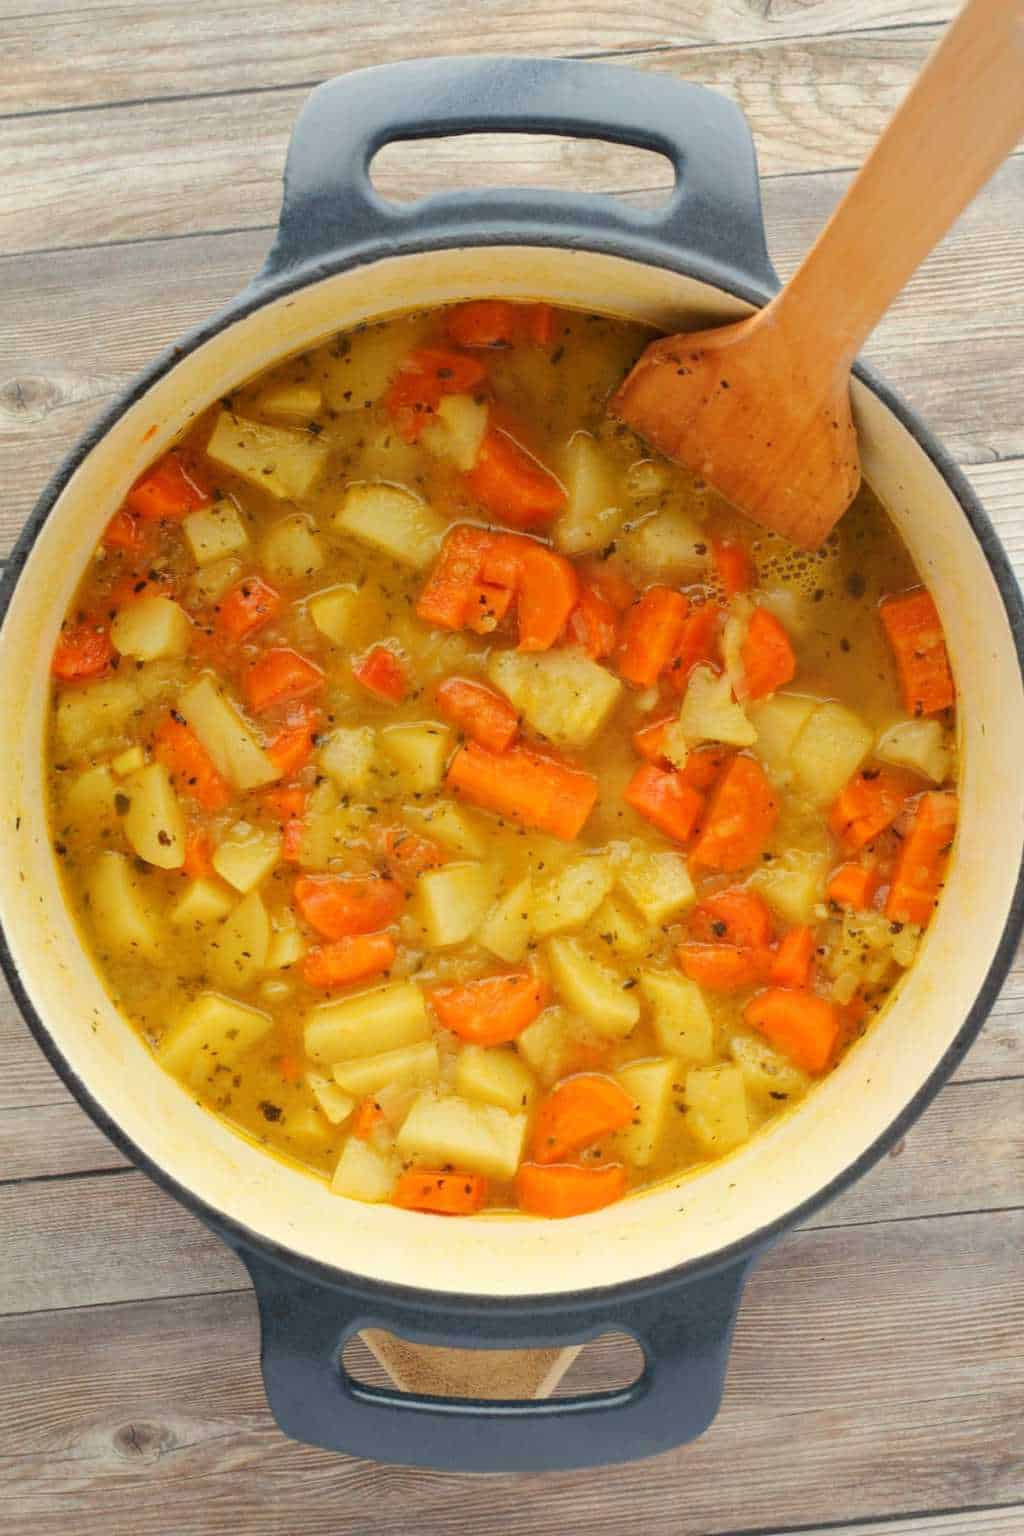 Vegetables and stock in a cast iron pot with a wooden spoon making vegan broccoli cheese soup.